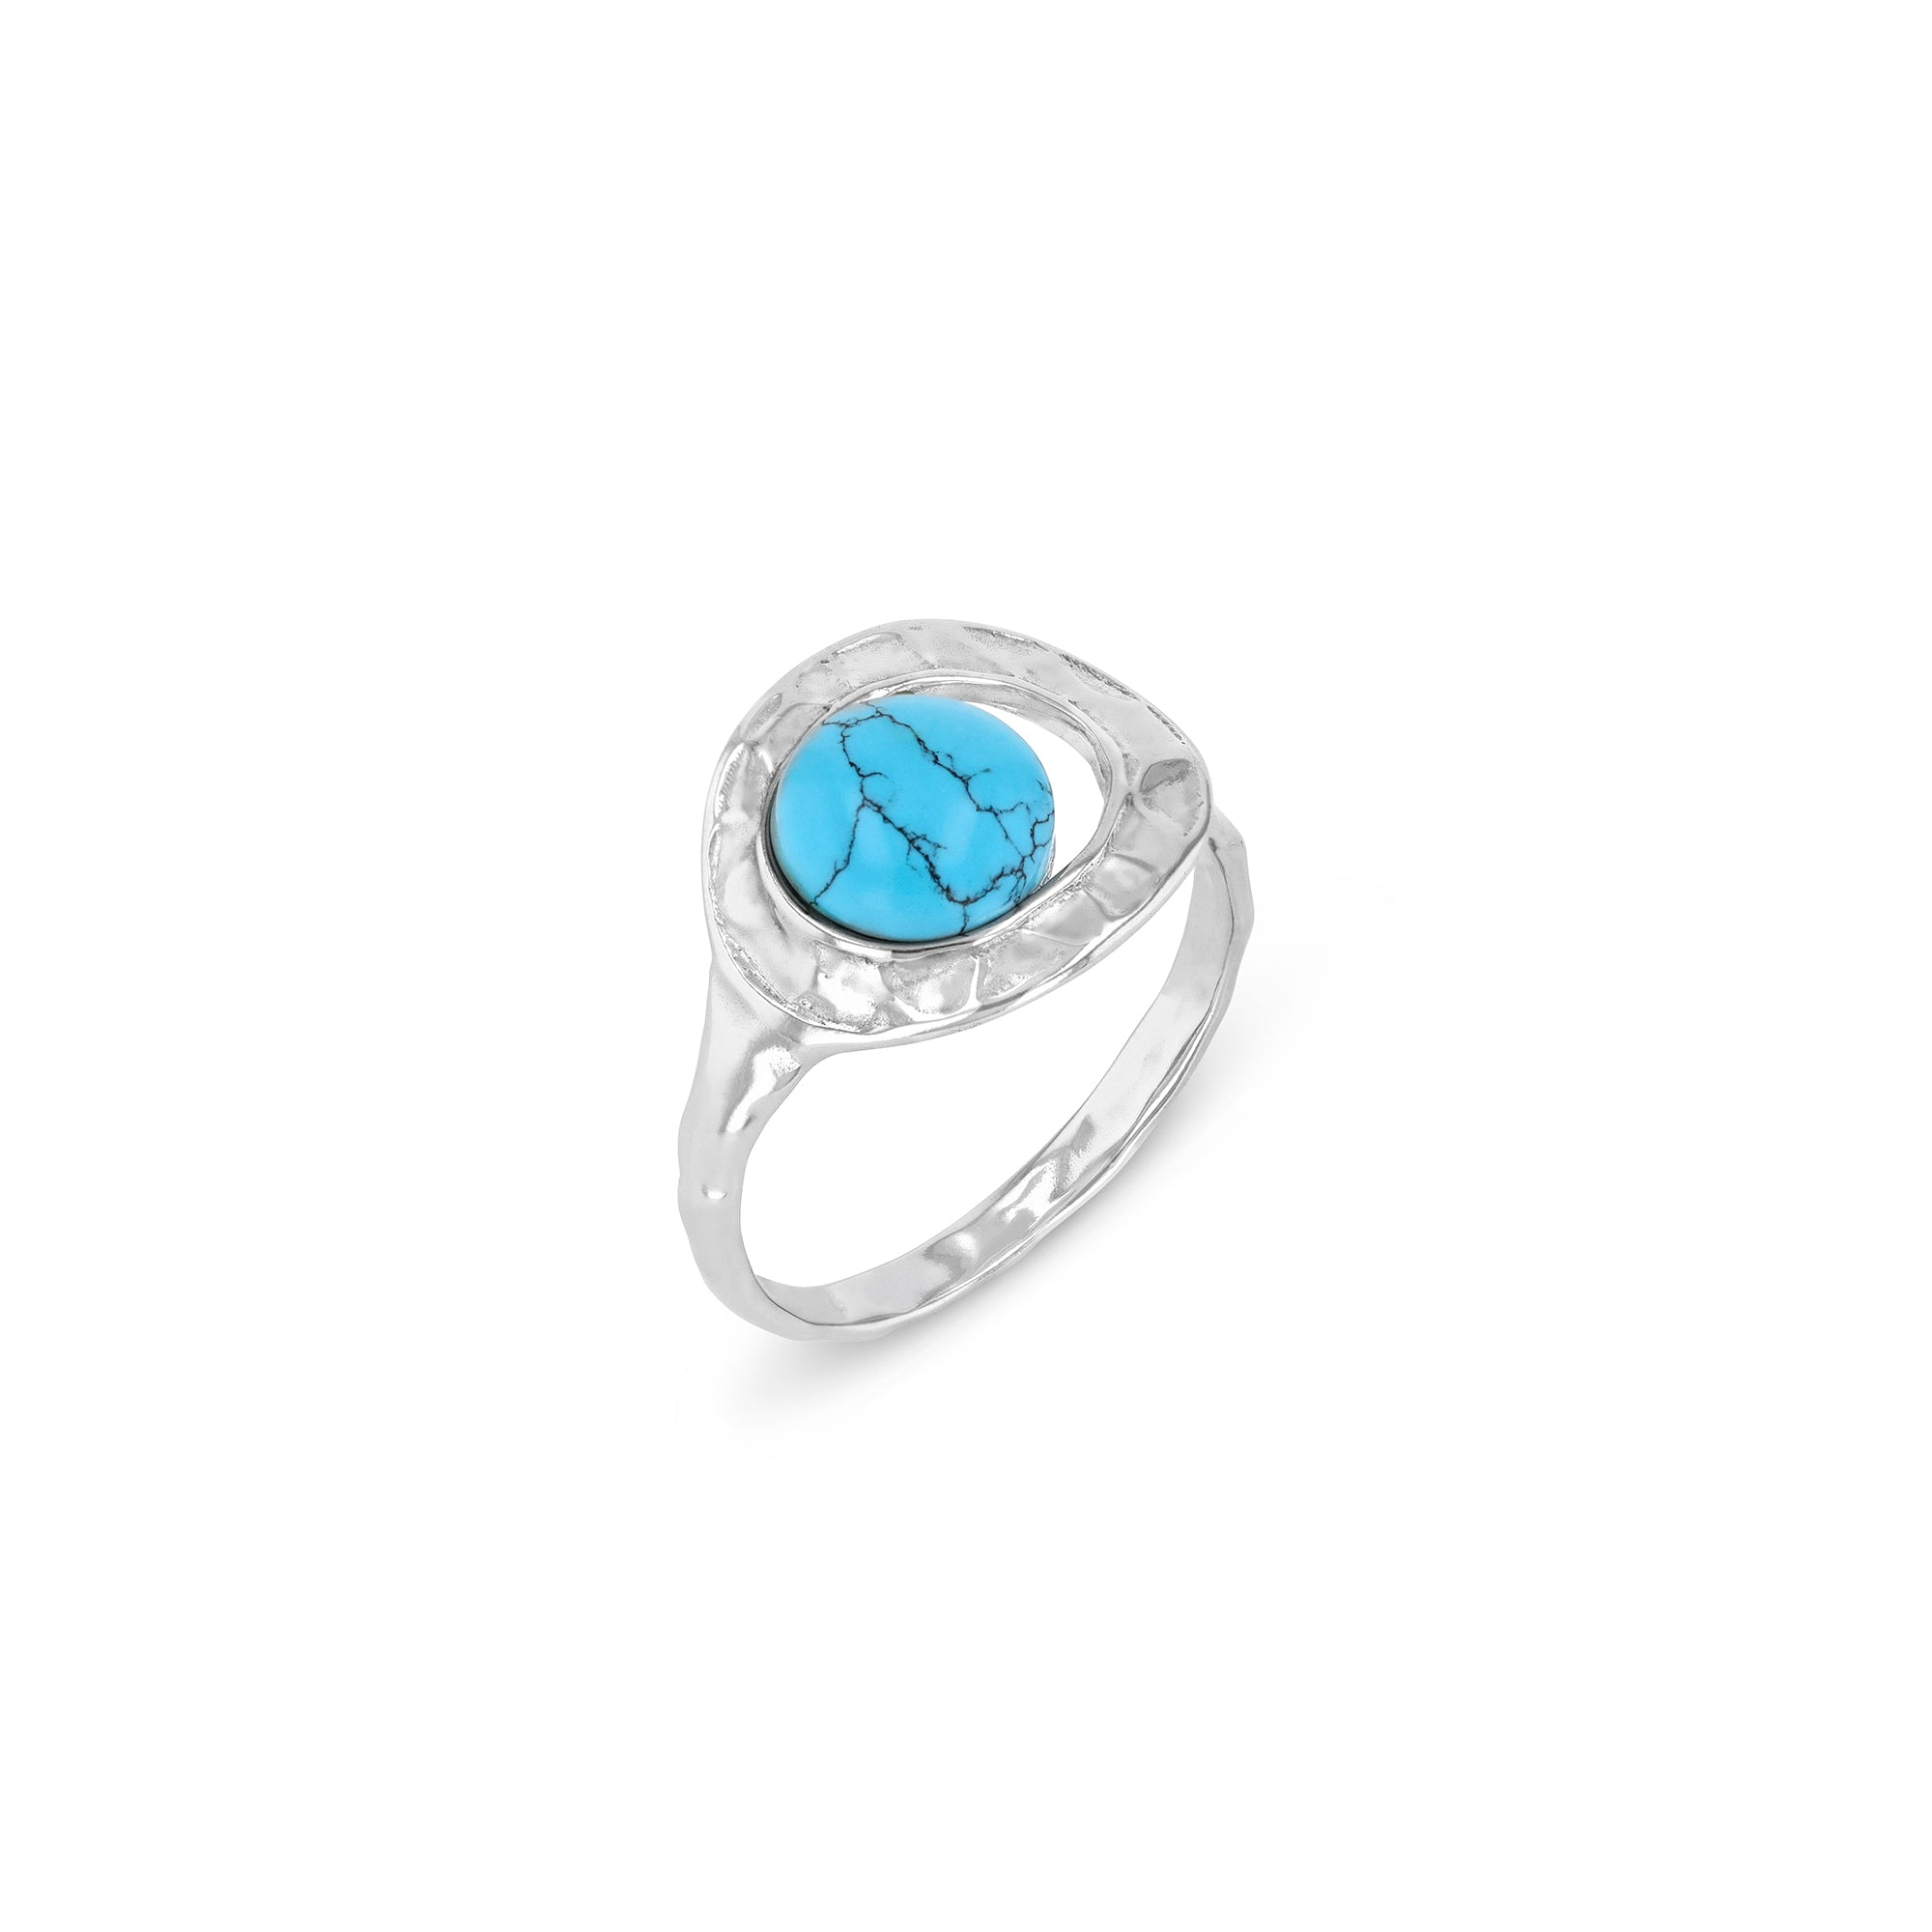 The Blue Planet Ring